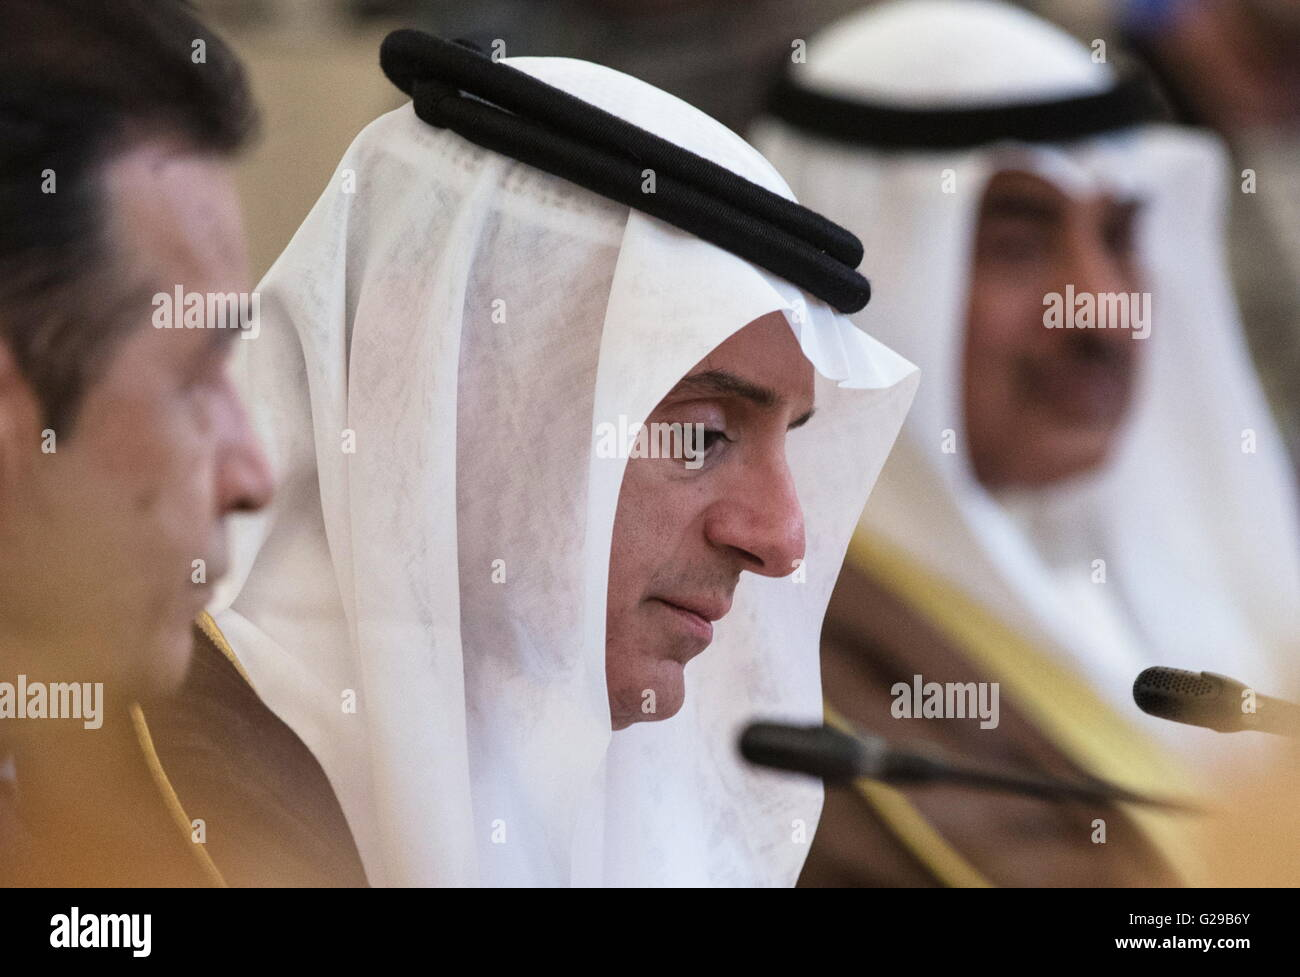 Moscow, Russia. 26th May, 2016. Saudi Arabia's Foreign Minister Adel bin Ahmed Al-Jubeir (C) looks on during - Stock Image